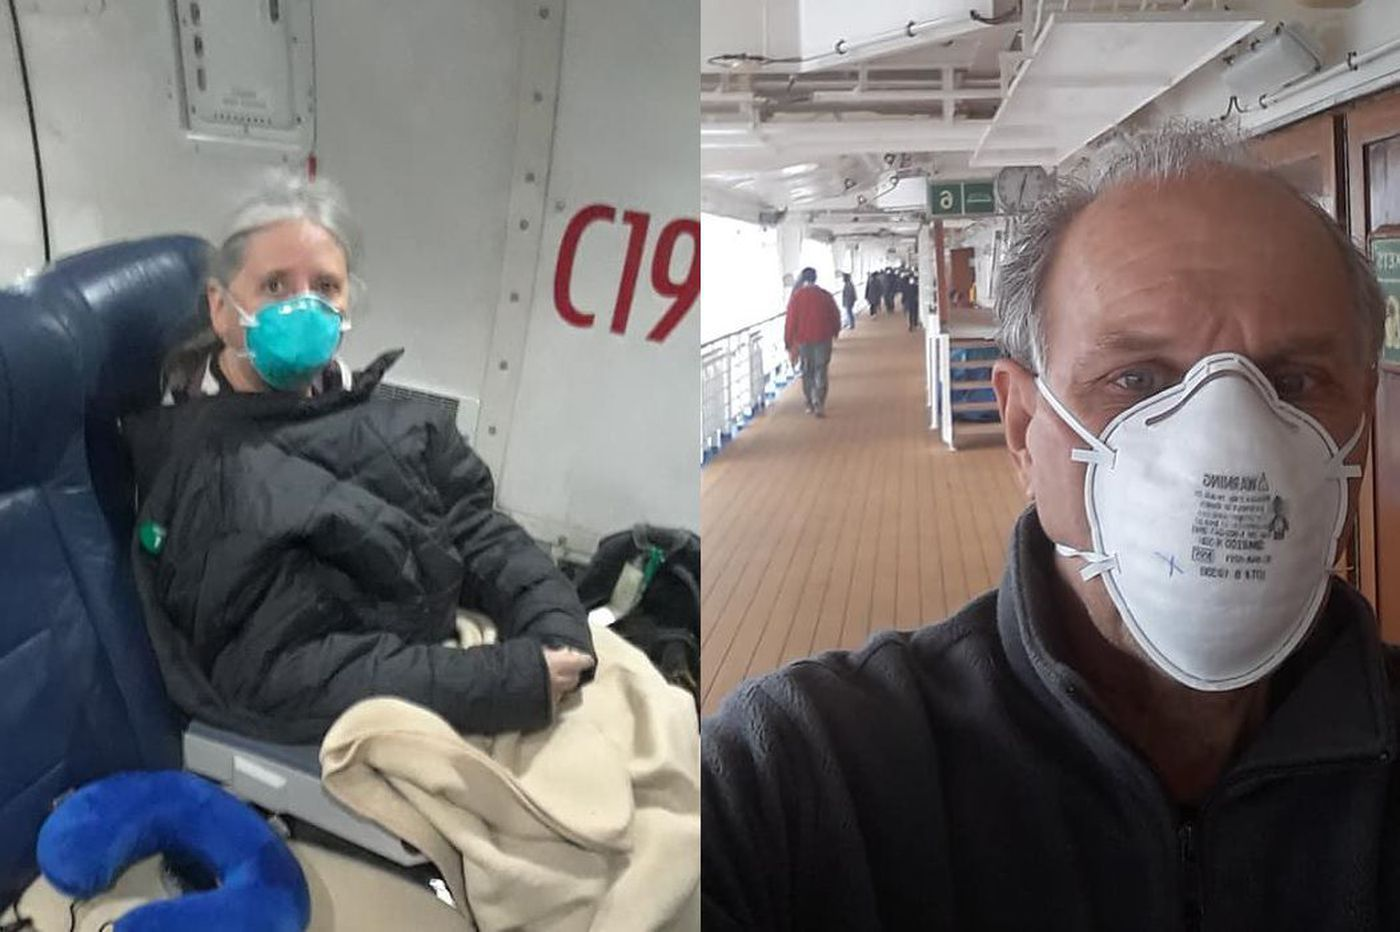 York County couple quarantined for coronavirus at U.S. Air Force base after evacuating cruise ship in Japan